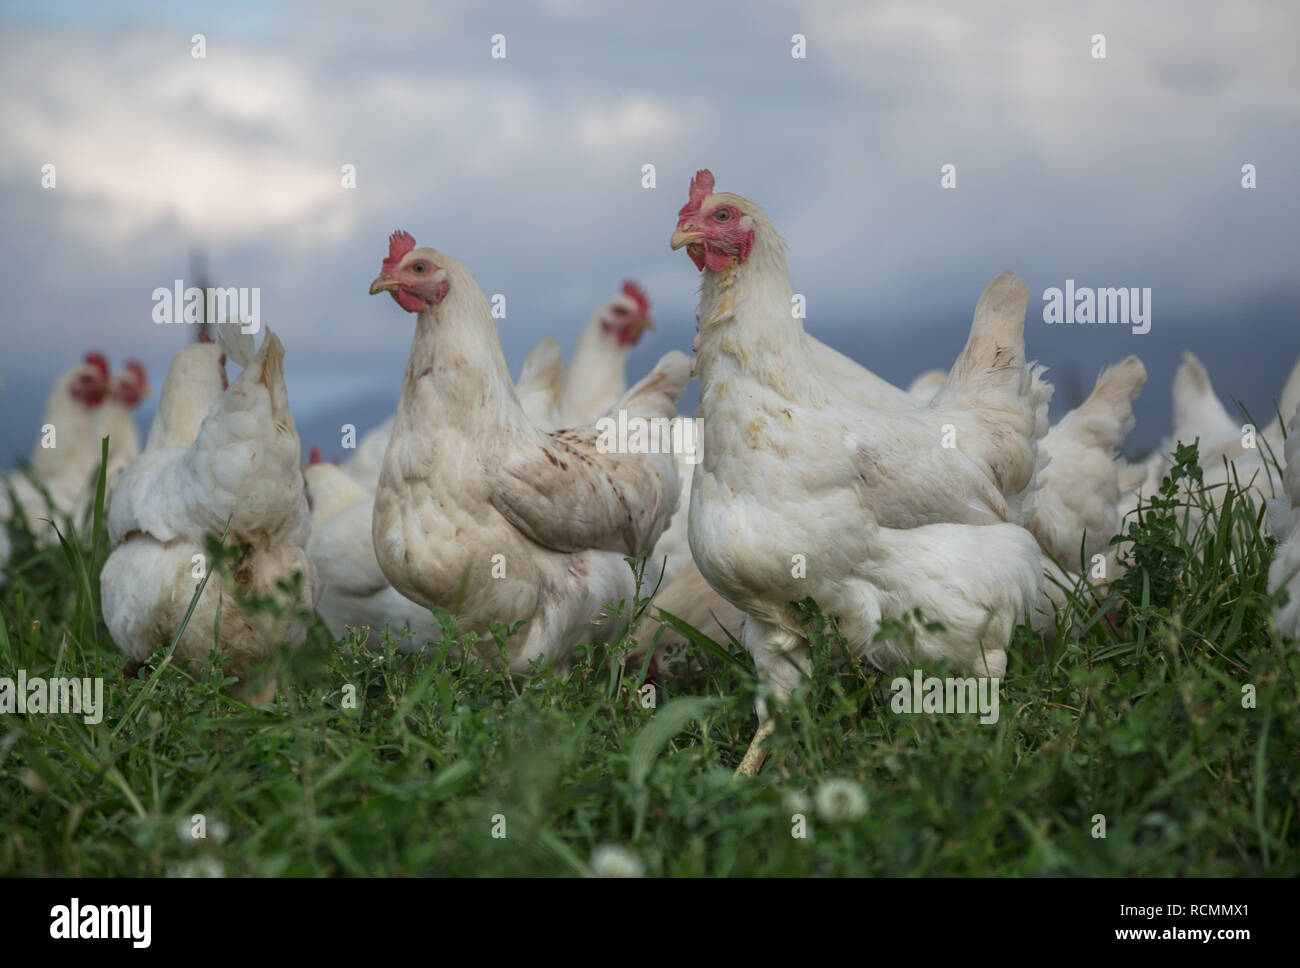 Healthy free range hens in a green field under open sky - Stock Image